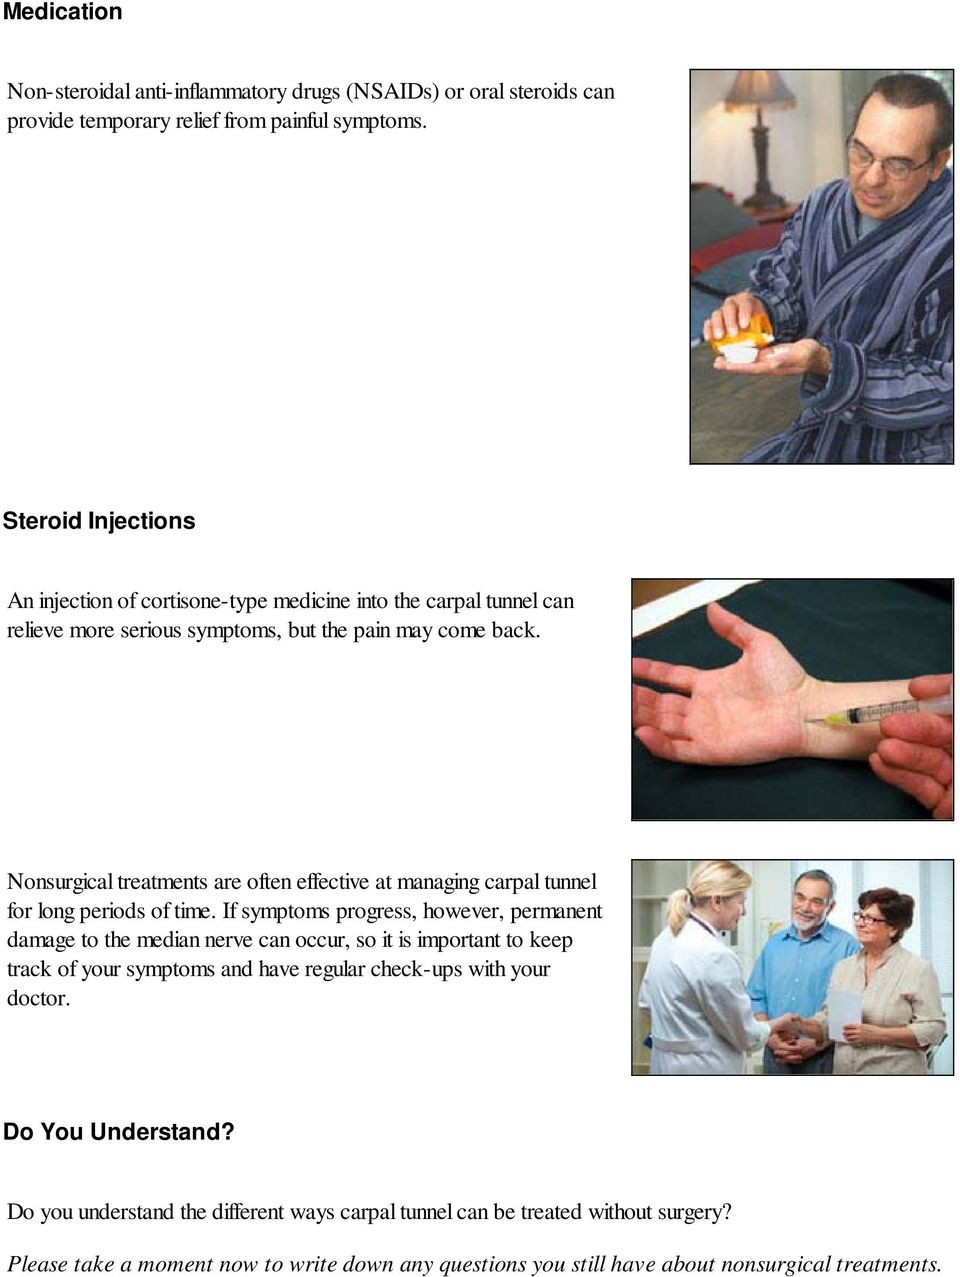 Nonsurgical treatments are often effective at managing carpal tunnel for long periods of time.